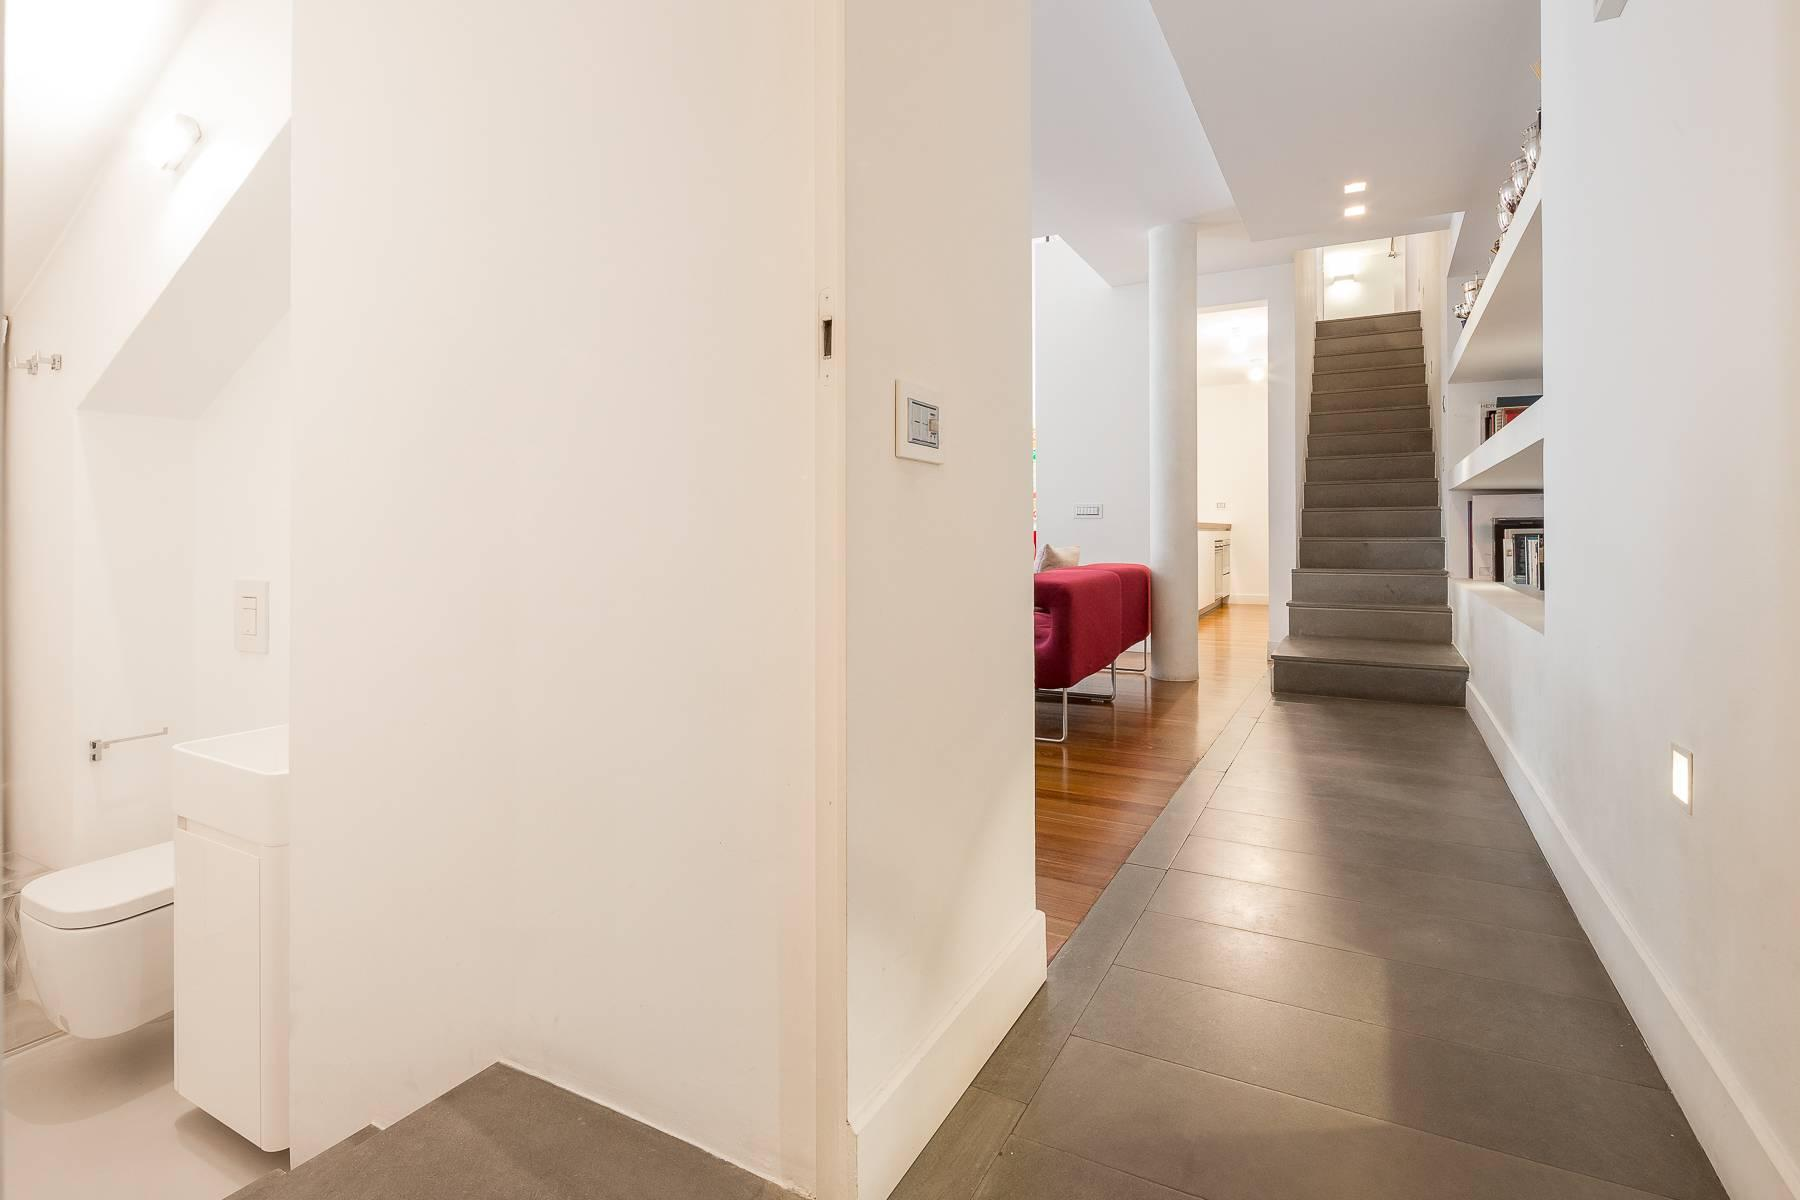 Apartment / loft in Brera district, Via Montebello / De Marchi - 5